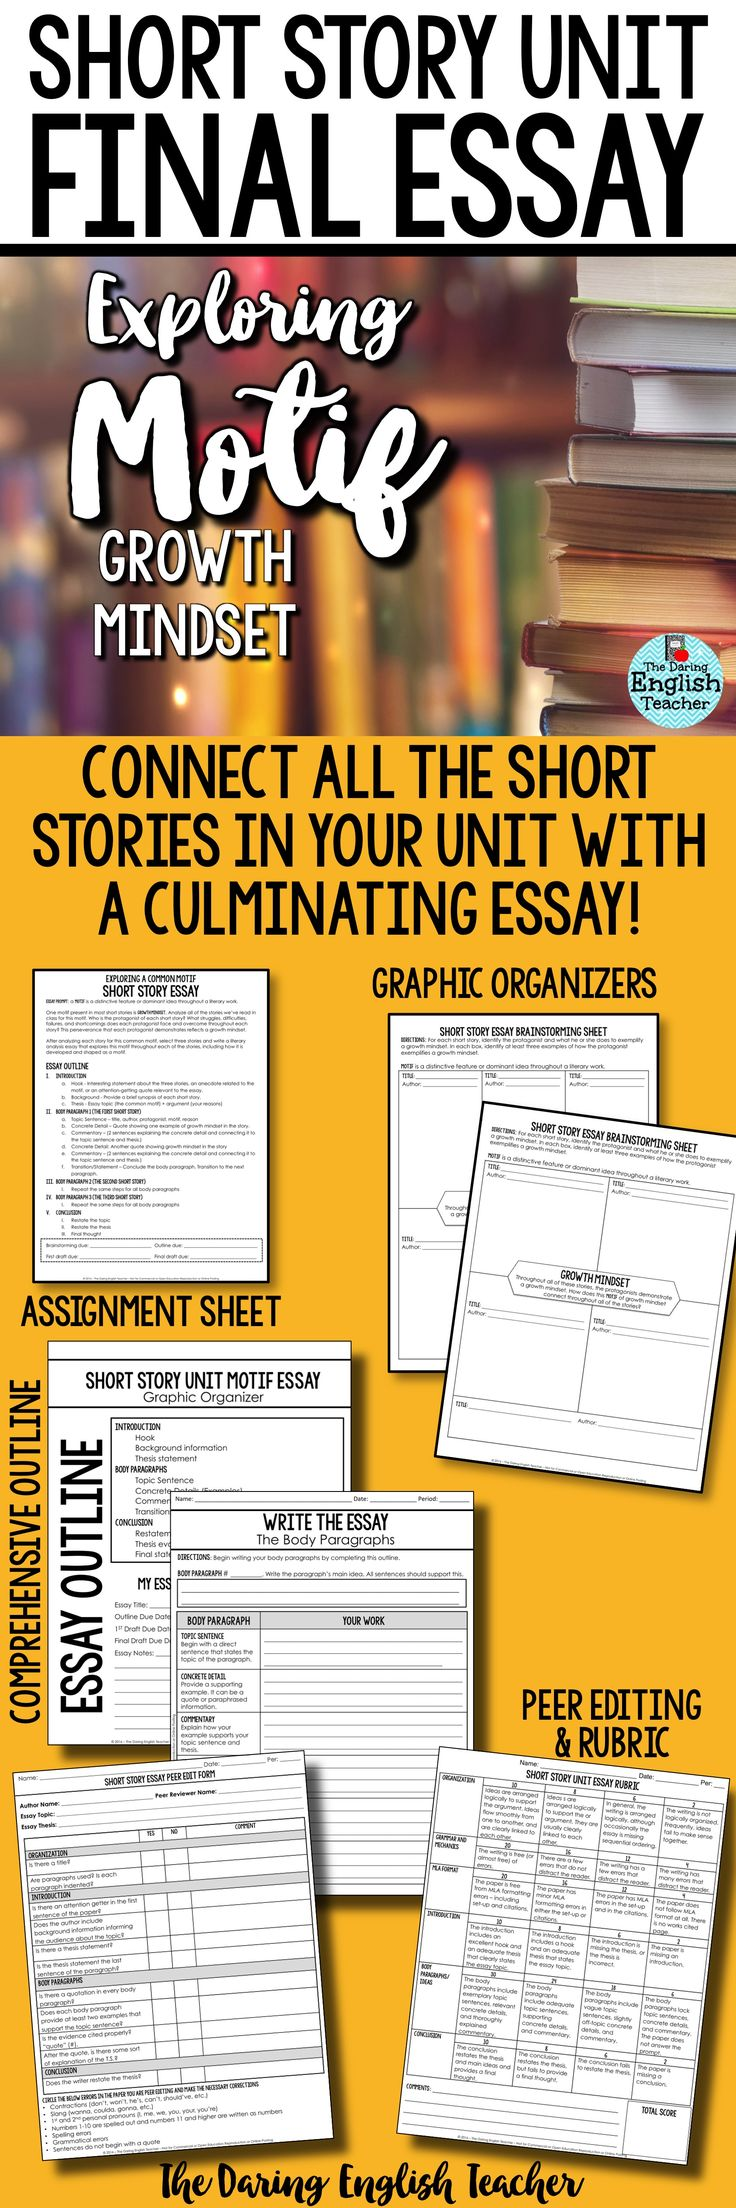 Sample Essays For High School Students Short Story Unit Final Essay Analyzing Motif Growth Mindset Essay  Writingteaching  Health Essay Sample also Buy Essay Papers Online  Best Analytical Writing Images On Pinterest  Teaching Ideas  E Business Essay